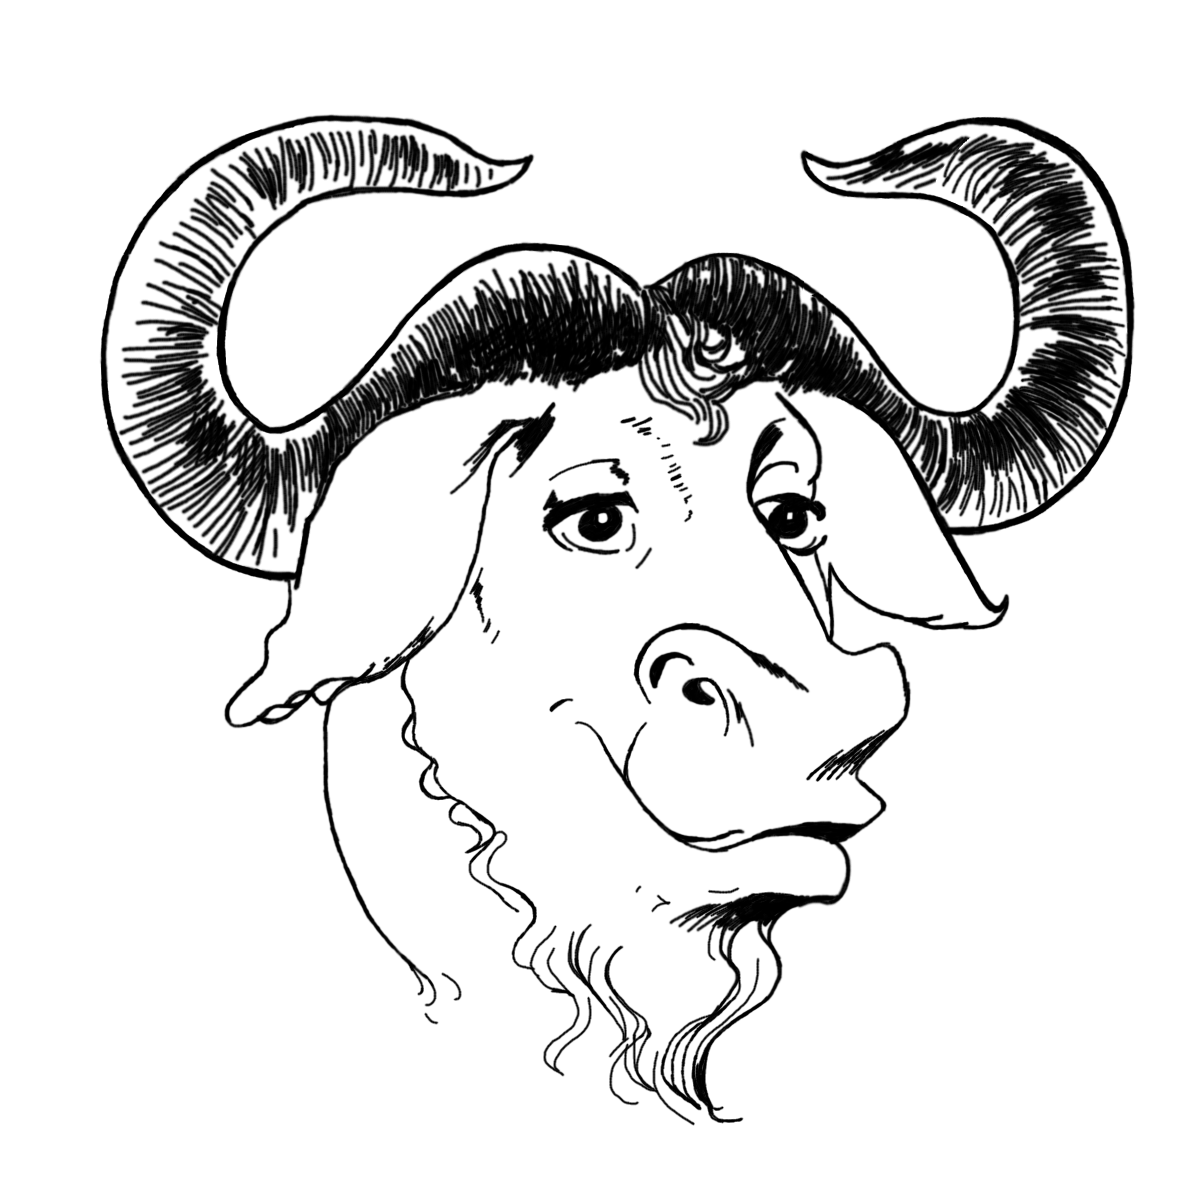 emacs ipython notebook and the shaving of a yak measure of justice Rabbit Shed gerwinski gnu head